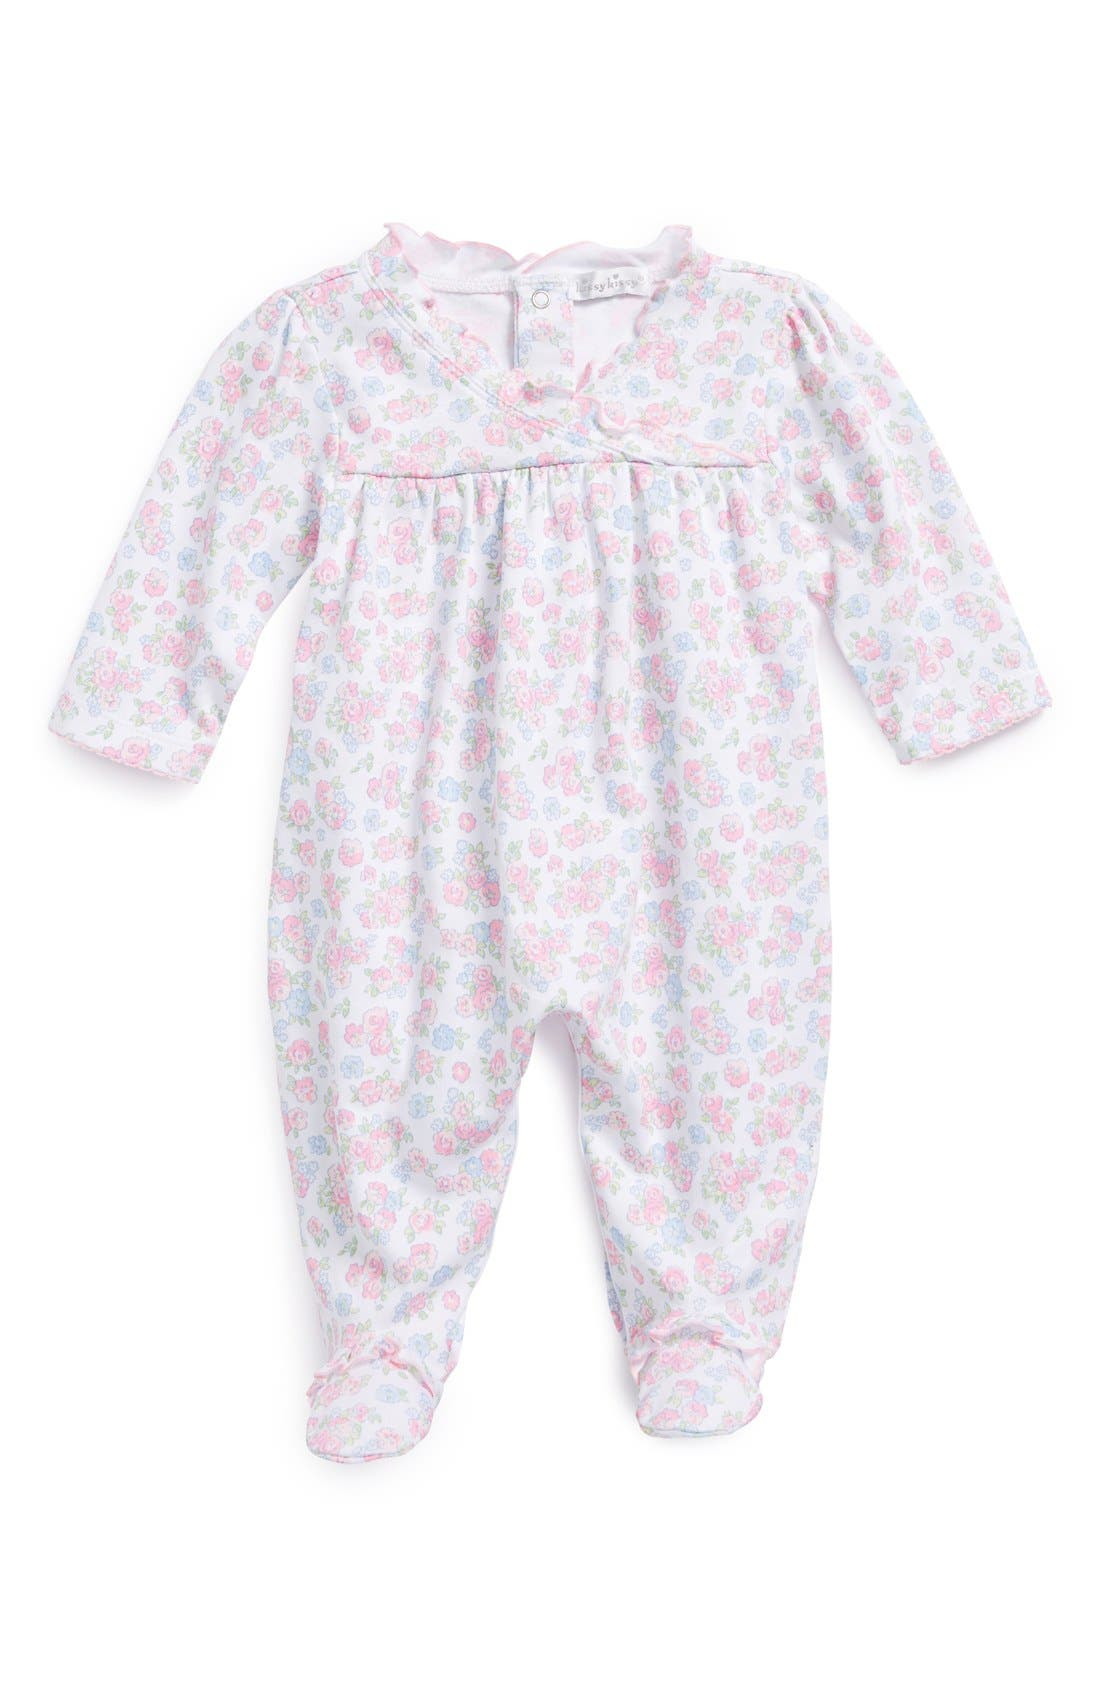 Alternate Image 1 Selected - Kissy Kissy 'Summer Splendor' Pima Cotton One-Piece (Baby Girls)